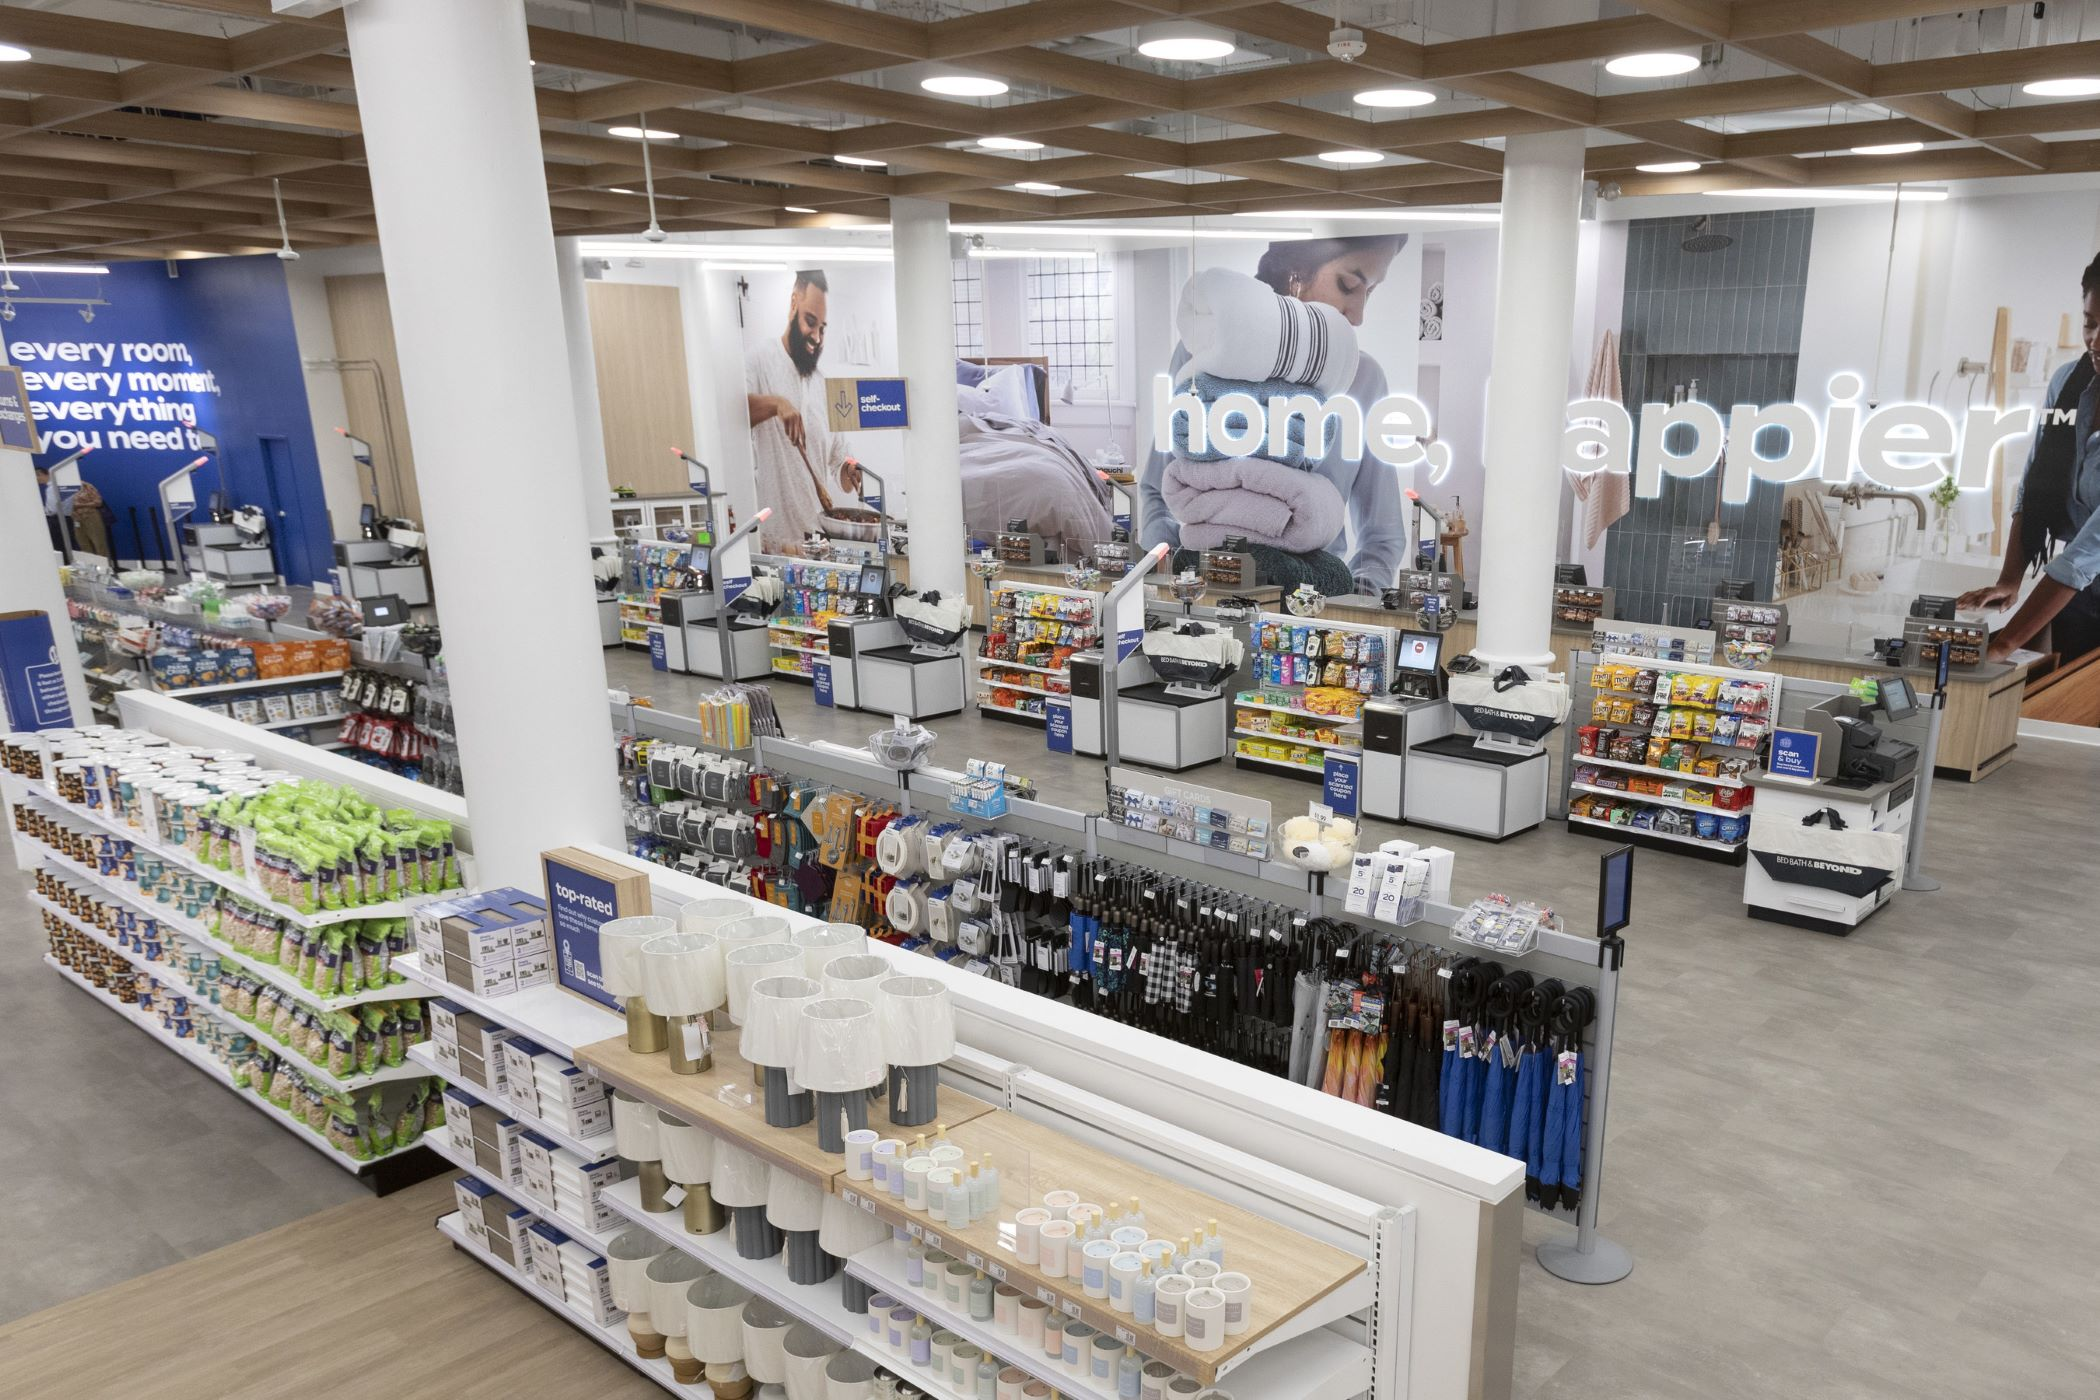 Bed Bath & Beyond reopened its New York flagship store with a new look to lure customers. (Bed Bath & Beyond)